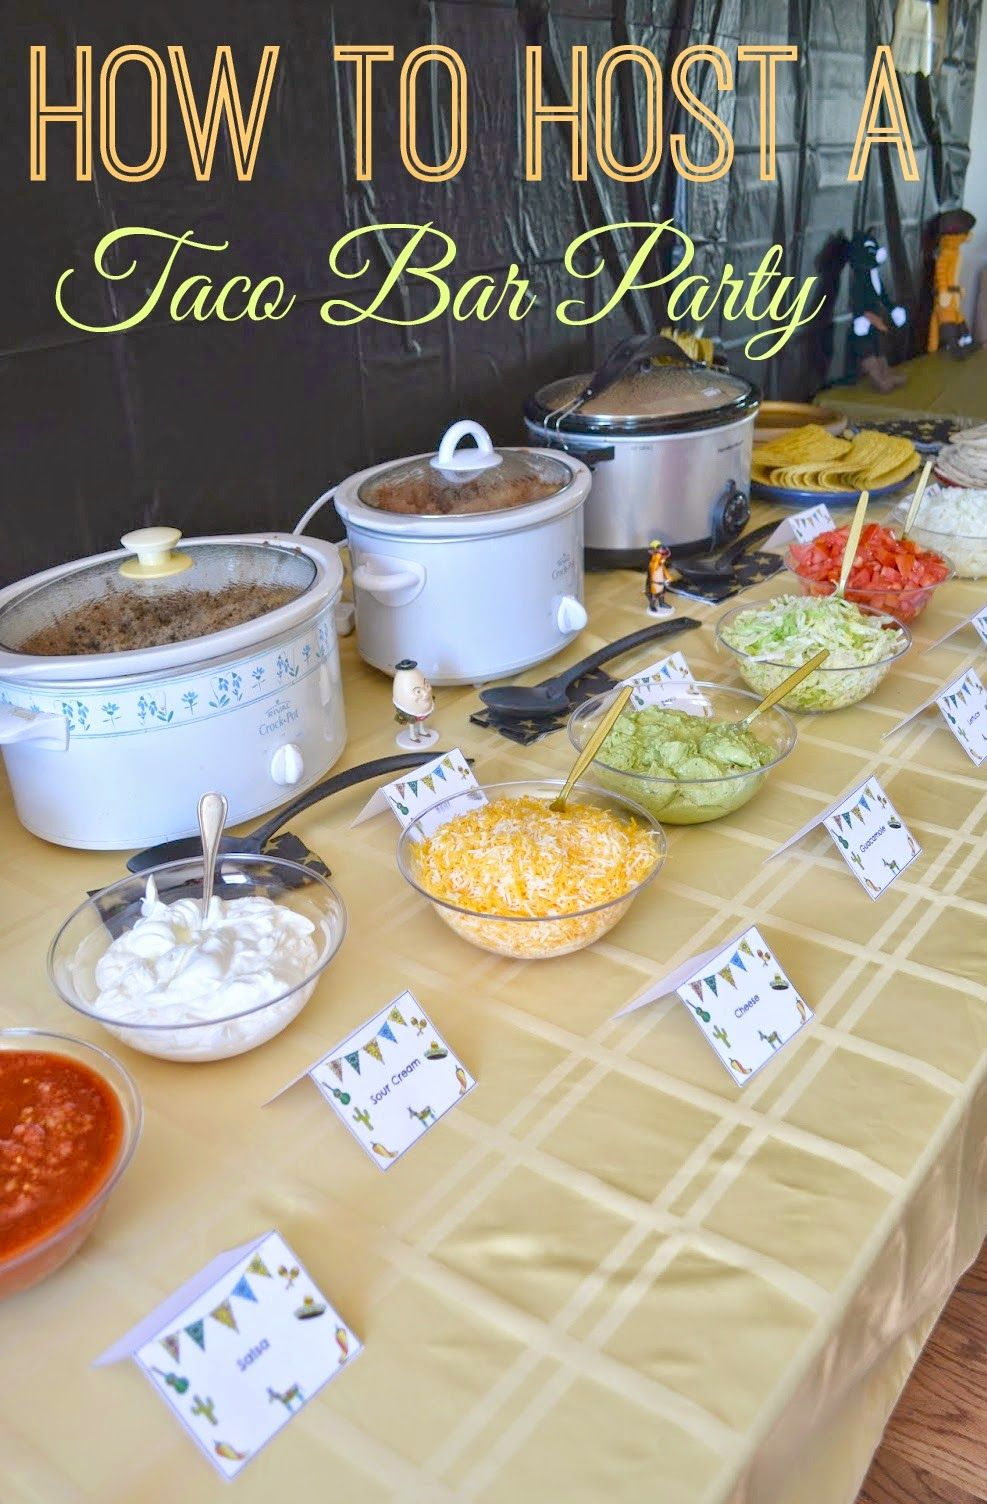 Diy Taco Bar Party Table Tents Free Printables Puss In Boots Birthday Ideas